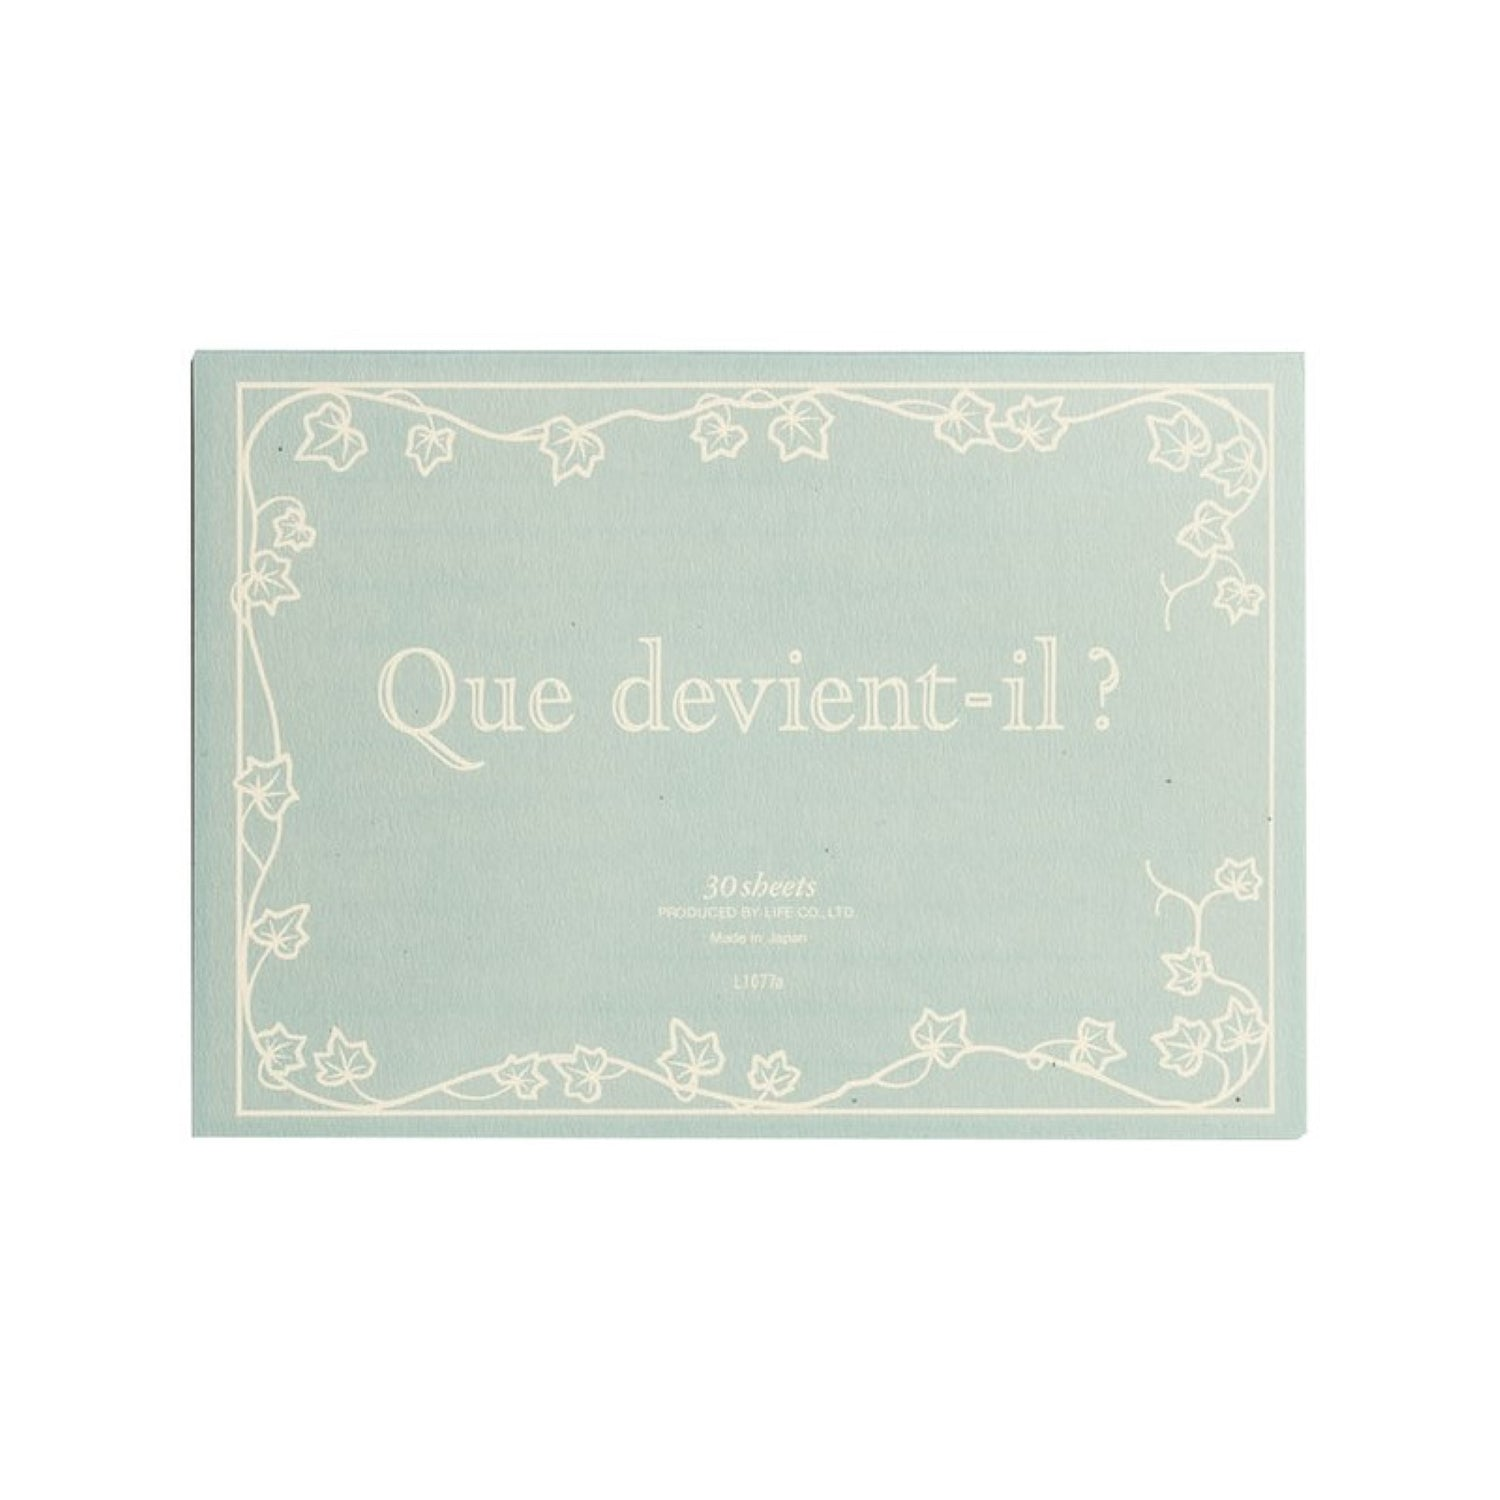 LIFE STATIONERY - JAPANESE PAPER QUE DEVIENT-IL? WRITING PAD - HORIZONTAL LINES - A5 - GREY